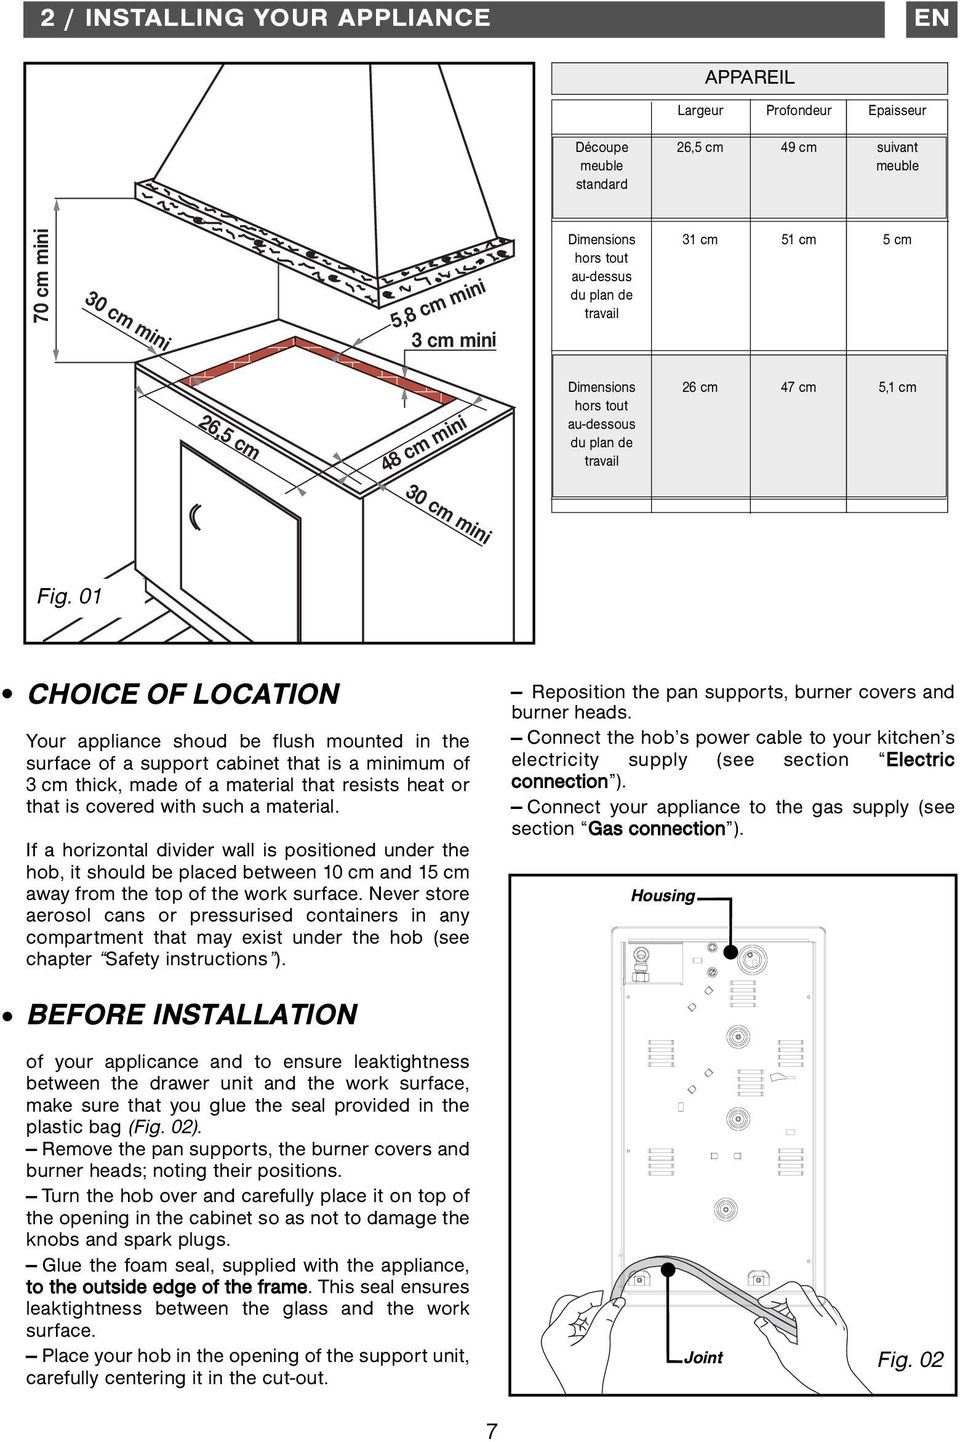 01 CHOICE OF LOCATION Your appliance shoud be flush mounted in the surface of a support cabinet that is a minimum of 3 cm thick, made of a material that resists heat or that is covered with such a